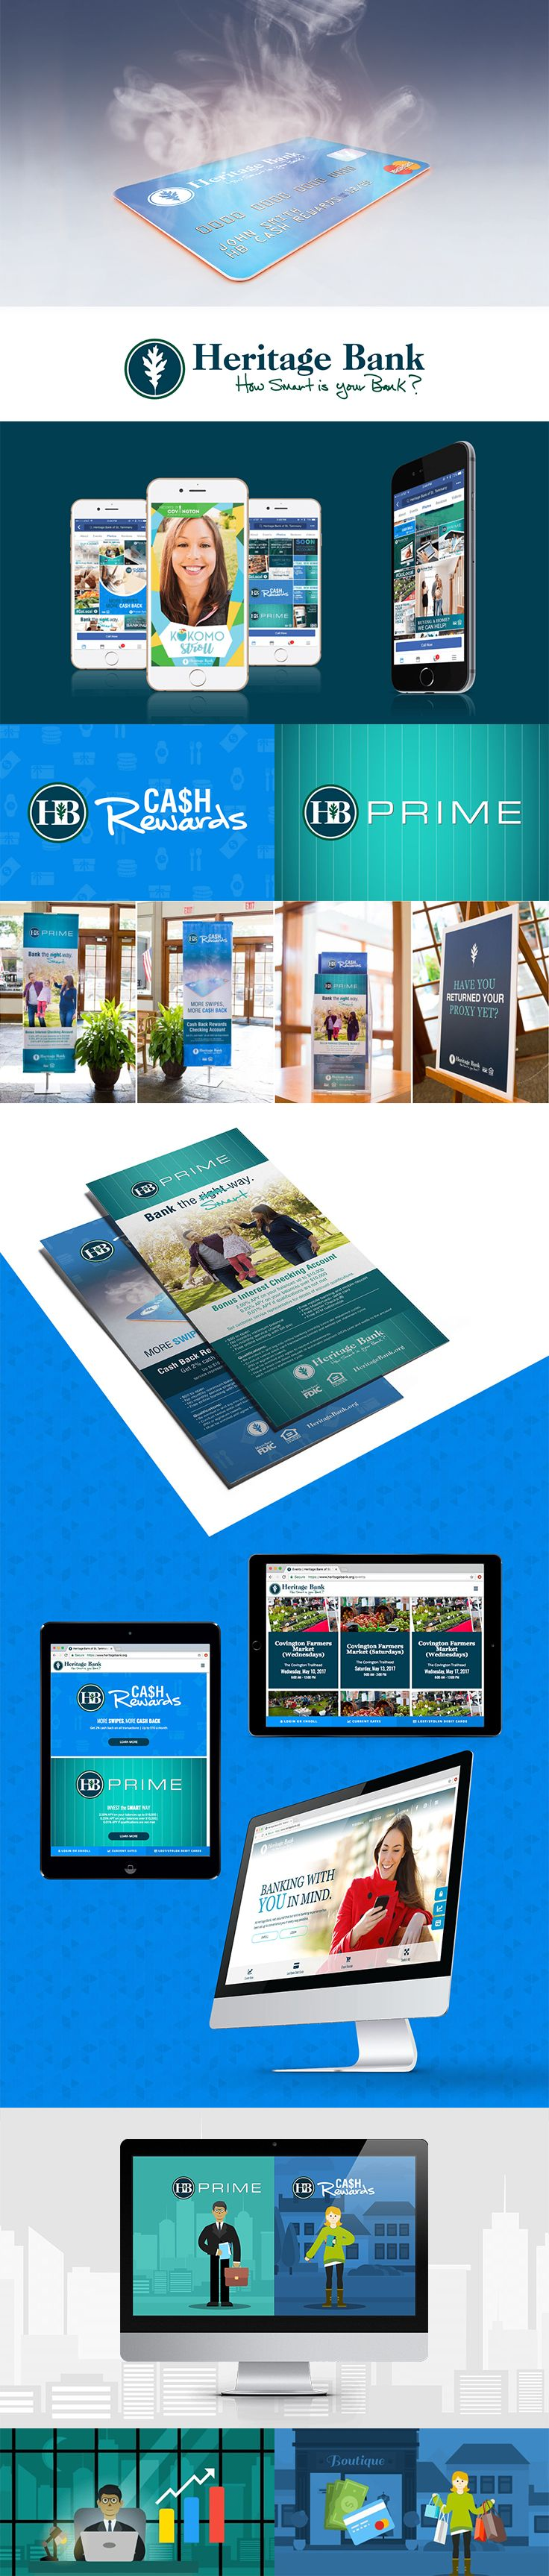 Heritage Bank brought us the challenge of refocusing their brand, updating their website, and connecting with their community. | Print Design | Banner Design | Social Media Design | Identity Branding | Responsive Web Design | Motion Design | Motion Graphics | Animation | Bank Website | Bank Design | Heritage Bank | Design Inspiration